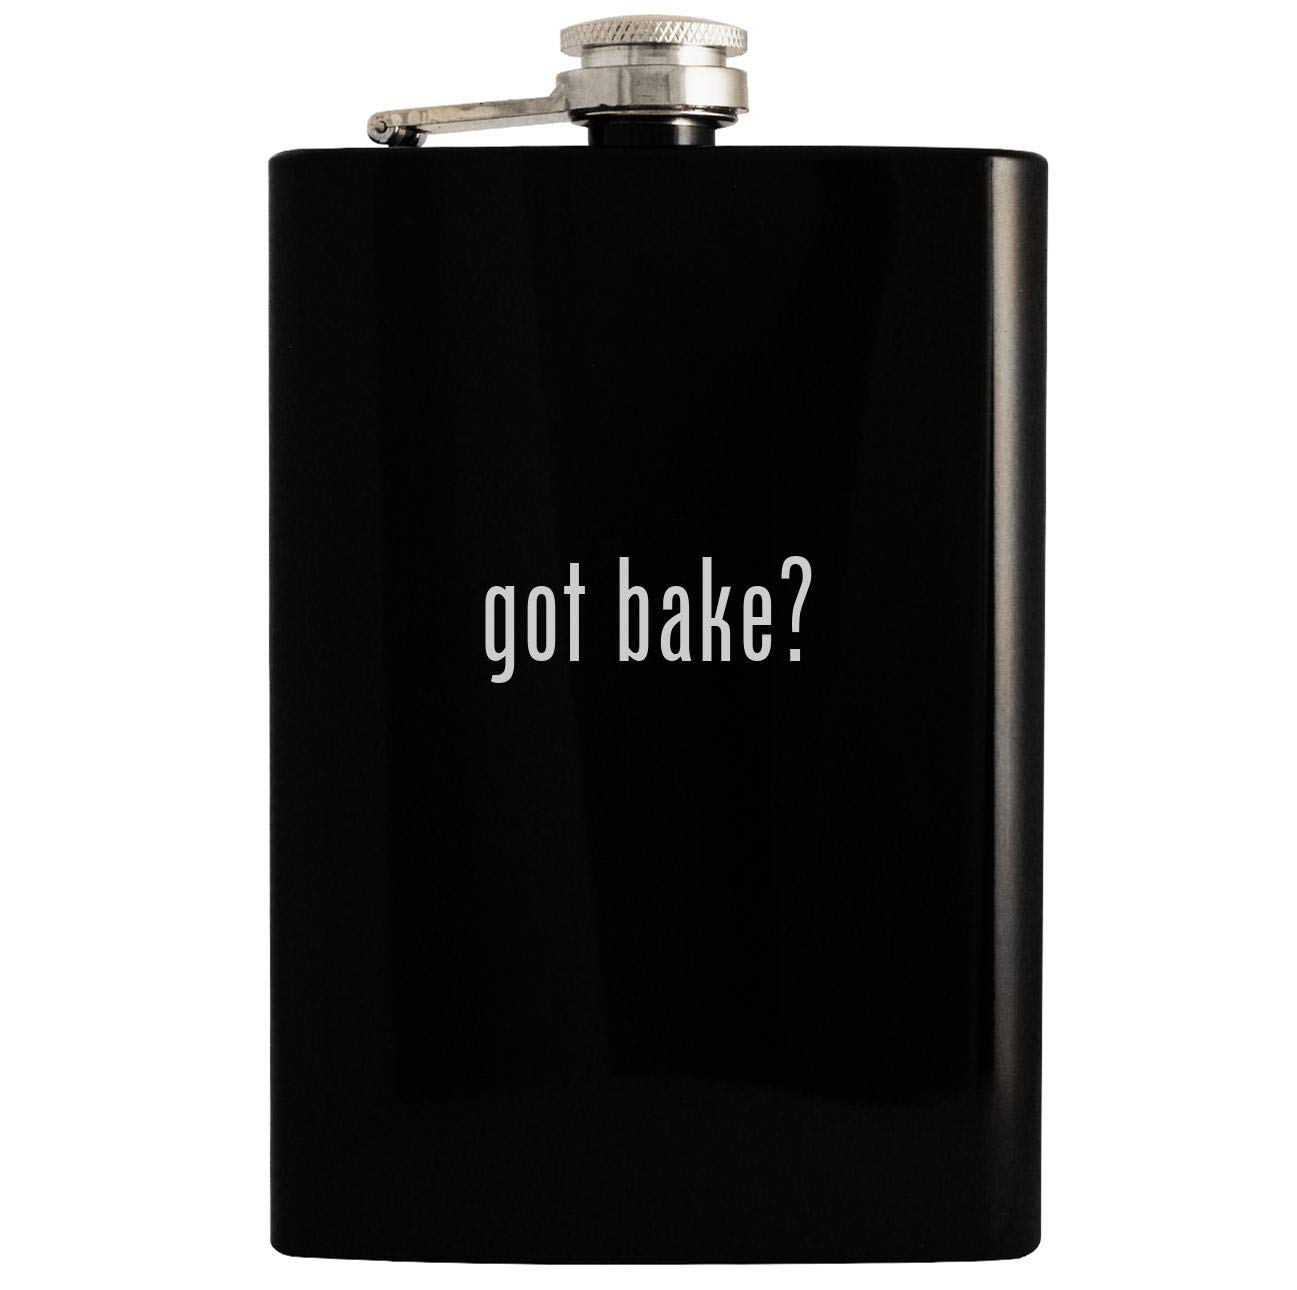 got bake? - Black 8oz Hip Drinking Alcohol Flask